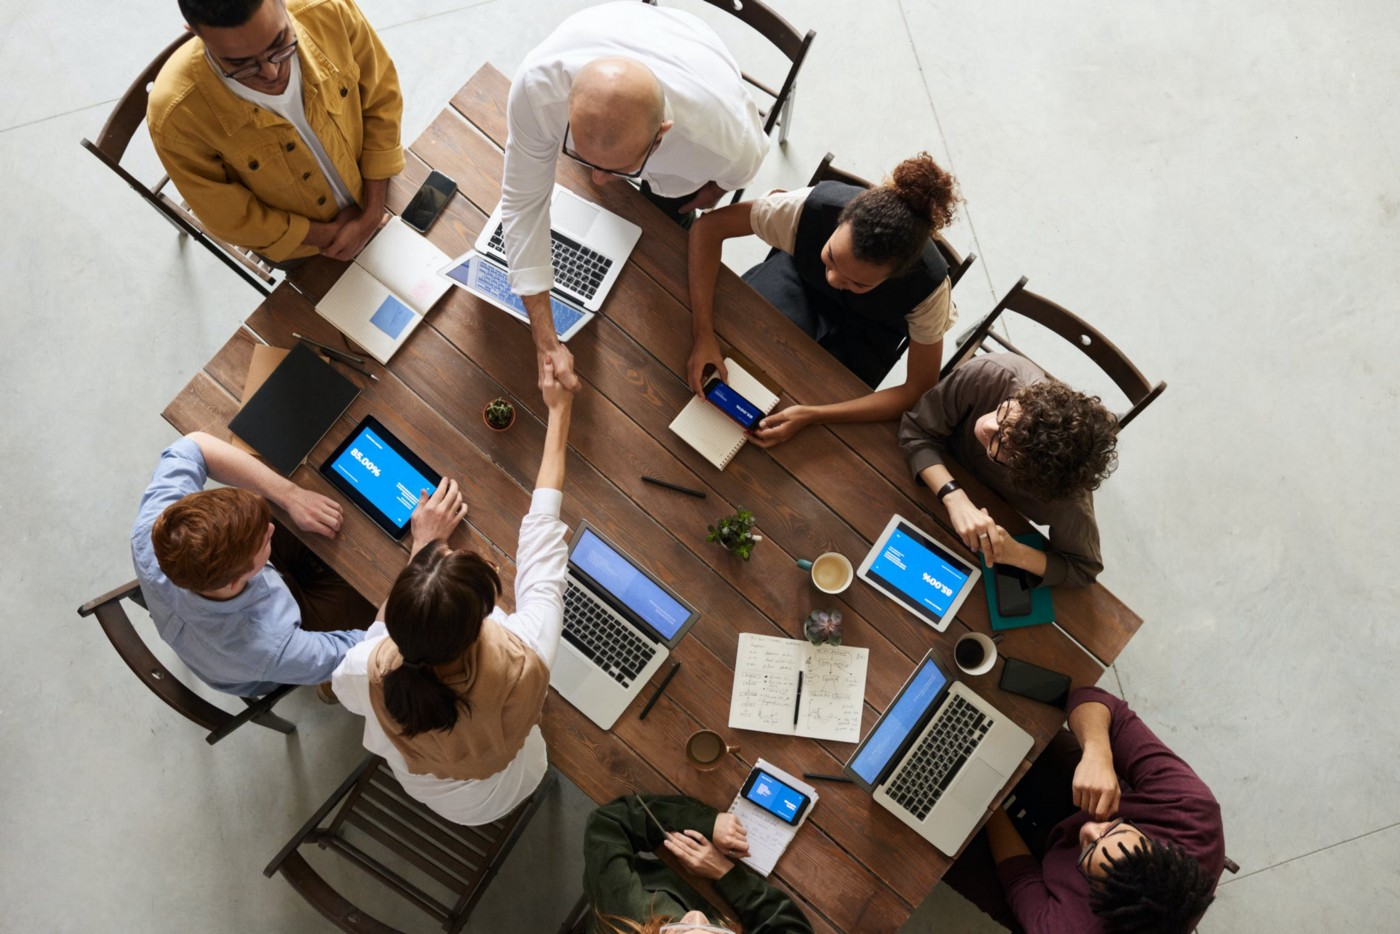 Teamwork image of a group of people in a meeting working together on a wooden table with computers, tablets and smartphones